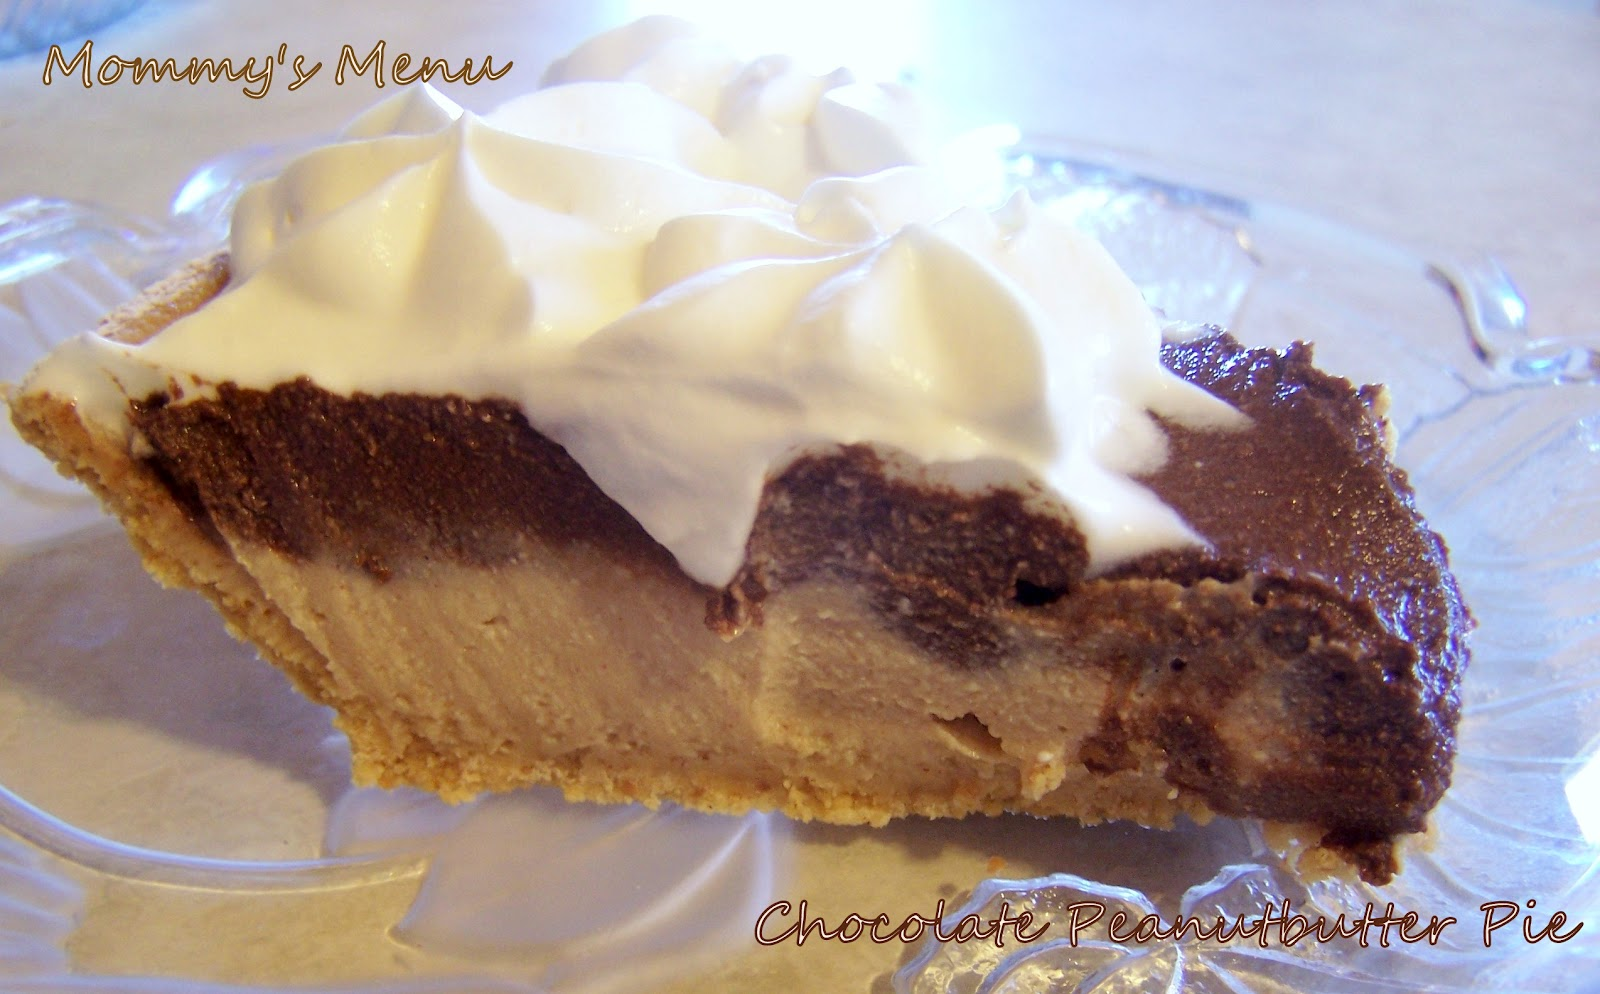 Mommy's Menu: SRC: Chocolate Peanut Butter Pie